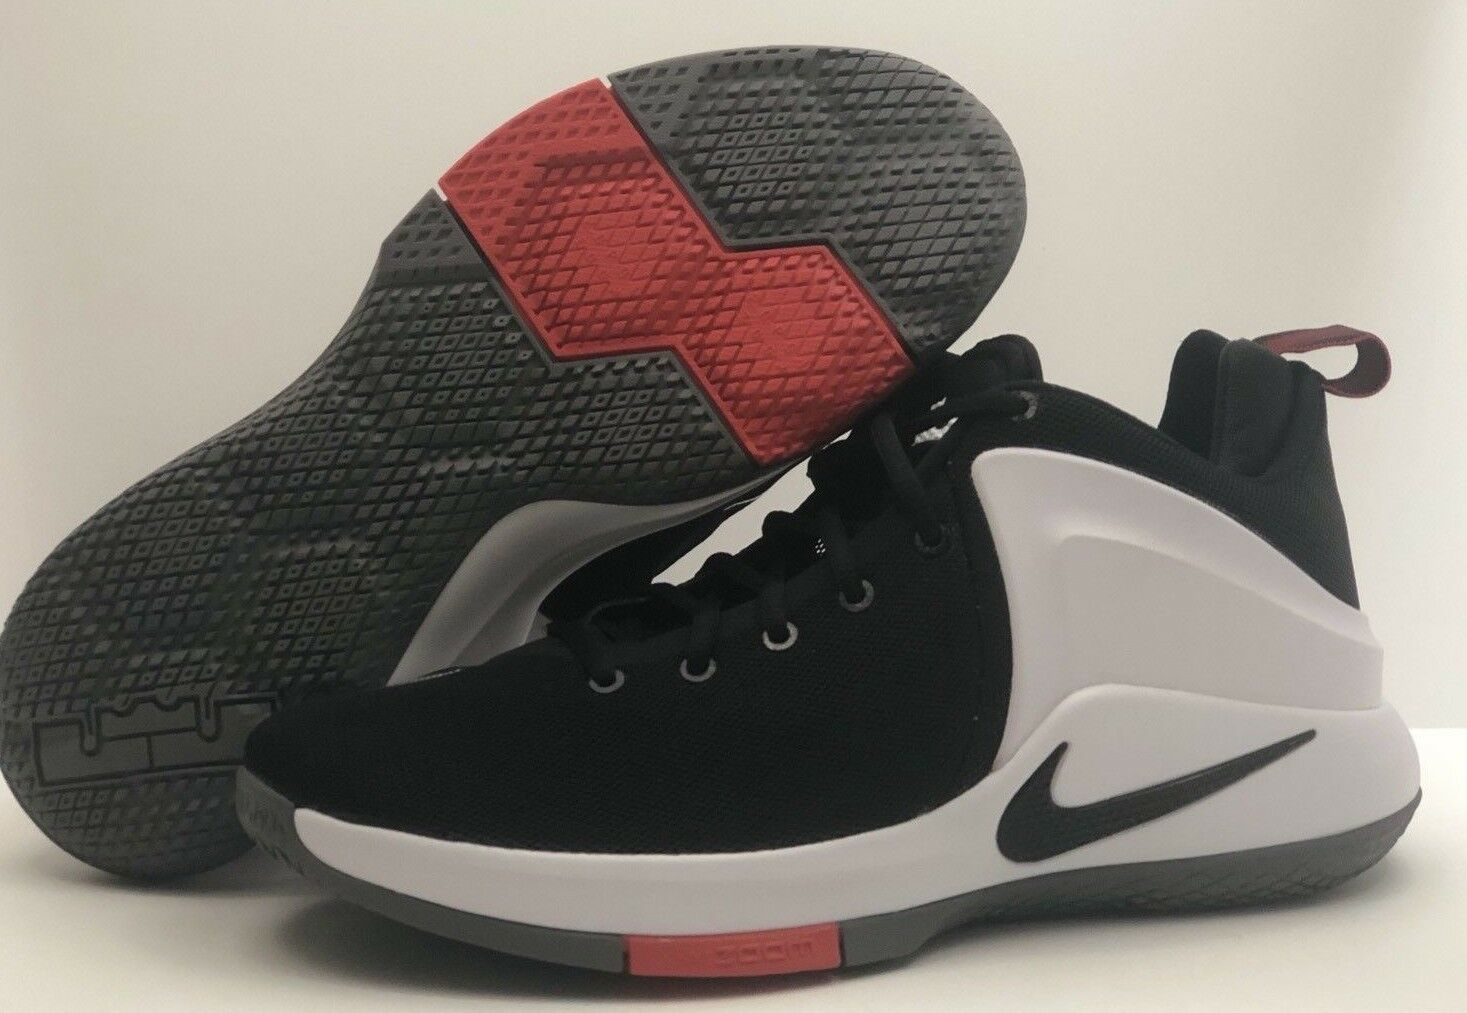 f18ebcdaffb21 Nike Zoom Witness Witness Witness LeBron James Men s Shoes Black White Red  Size 10.5  NEW  c789a6